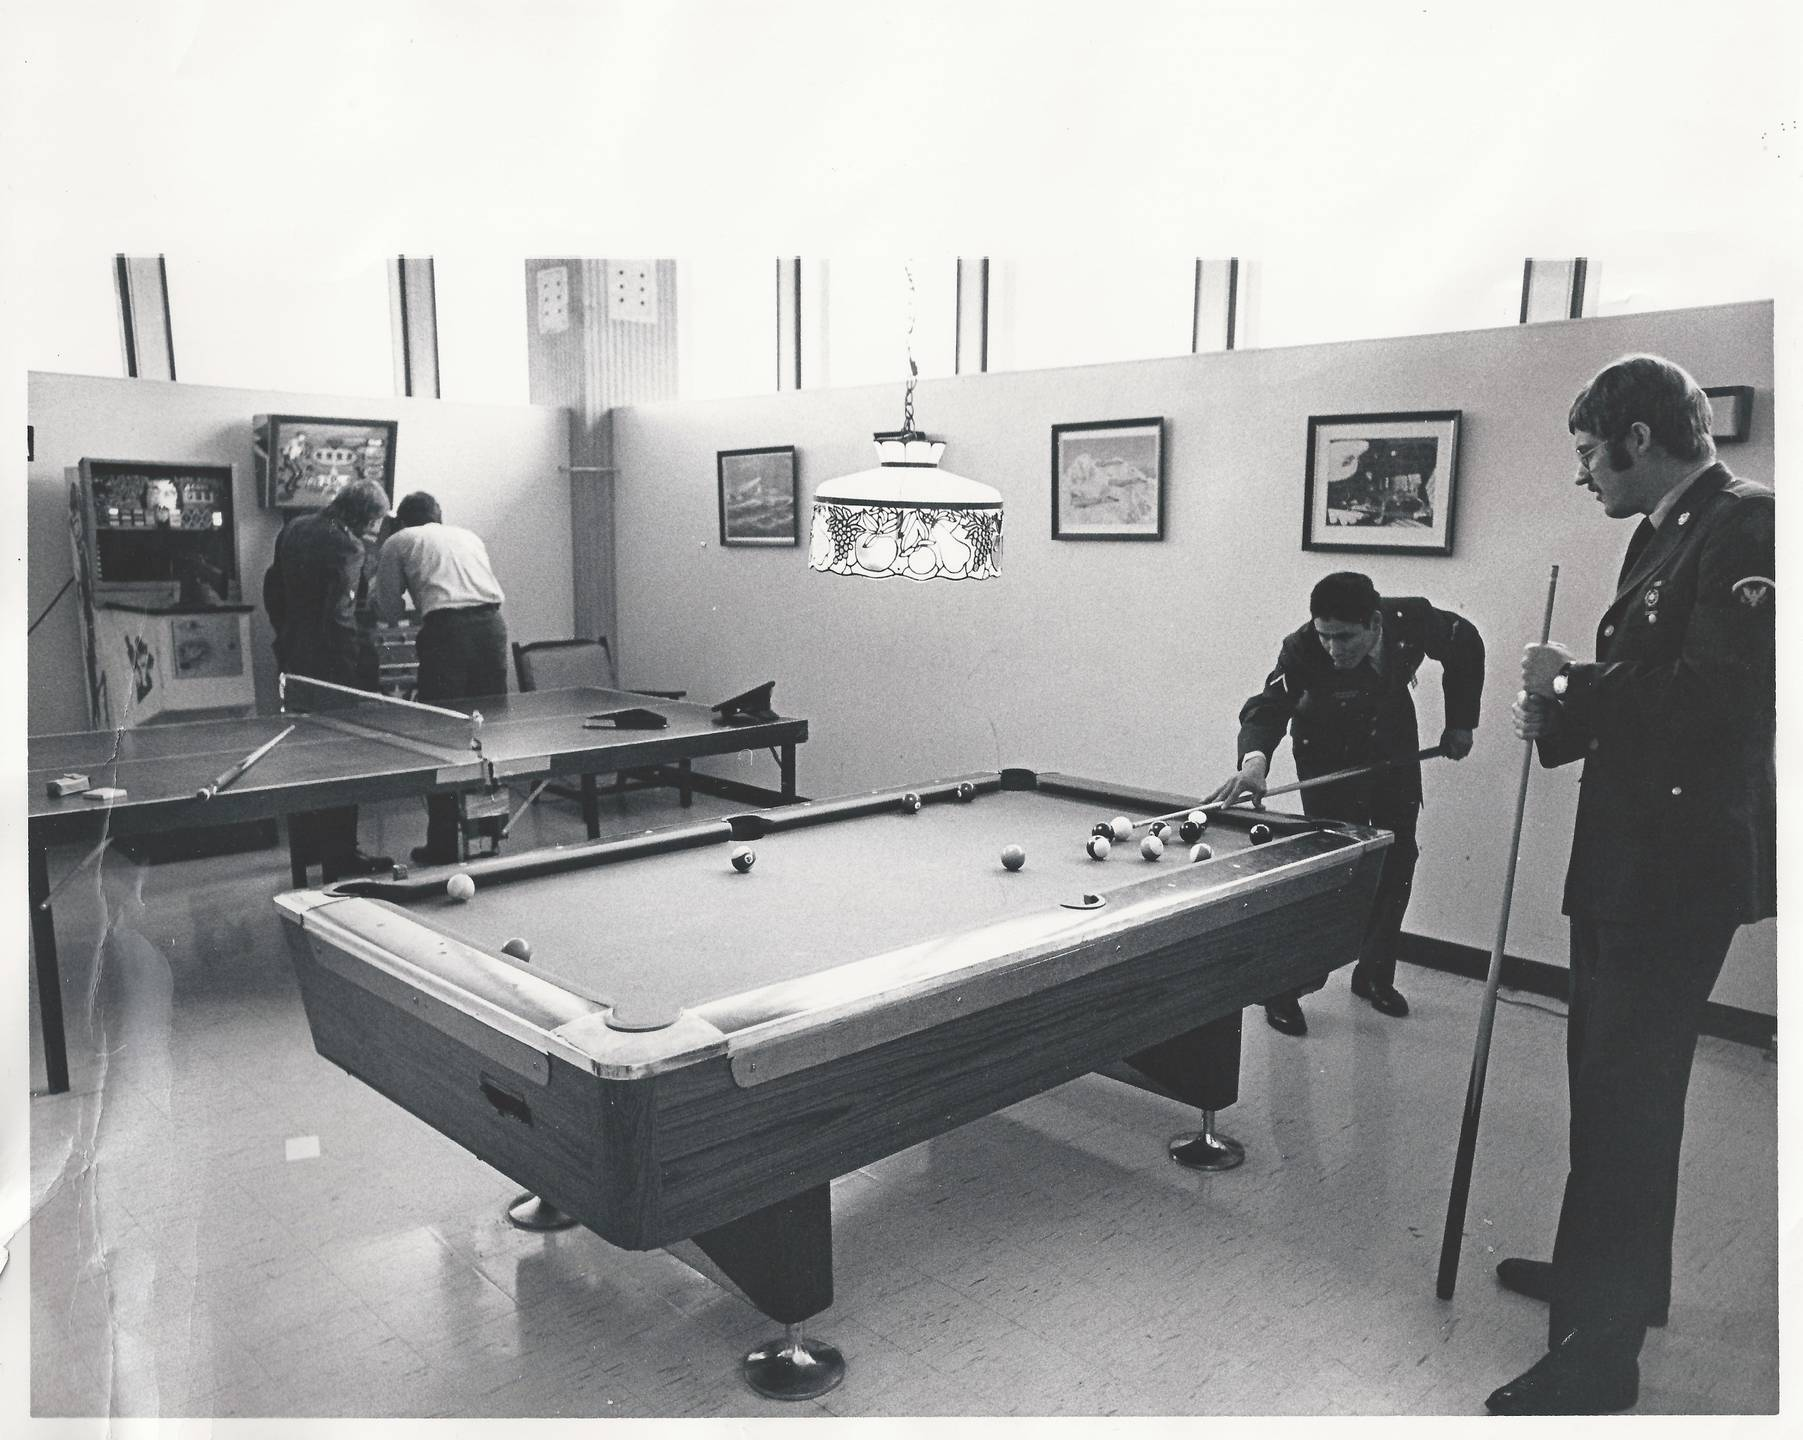 Two men playing pool.